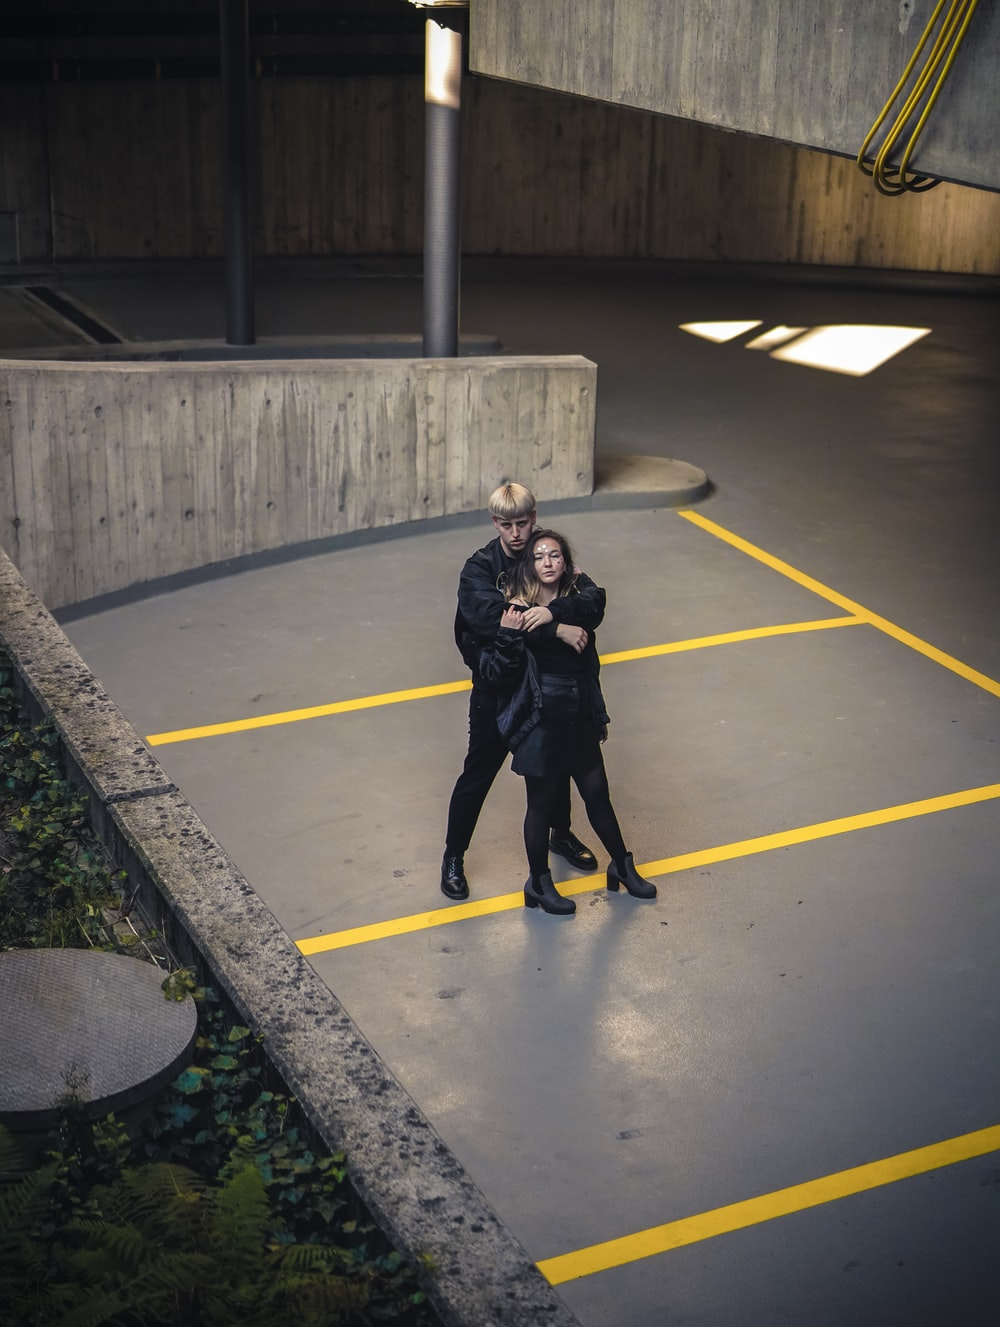 man and woman standing near concrete railings